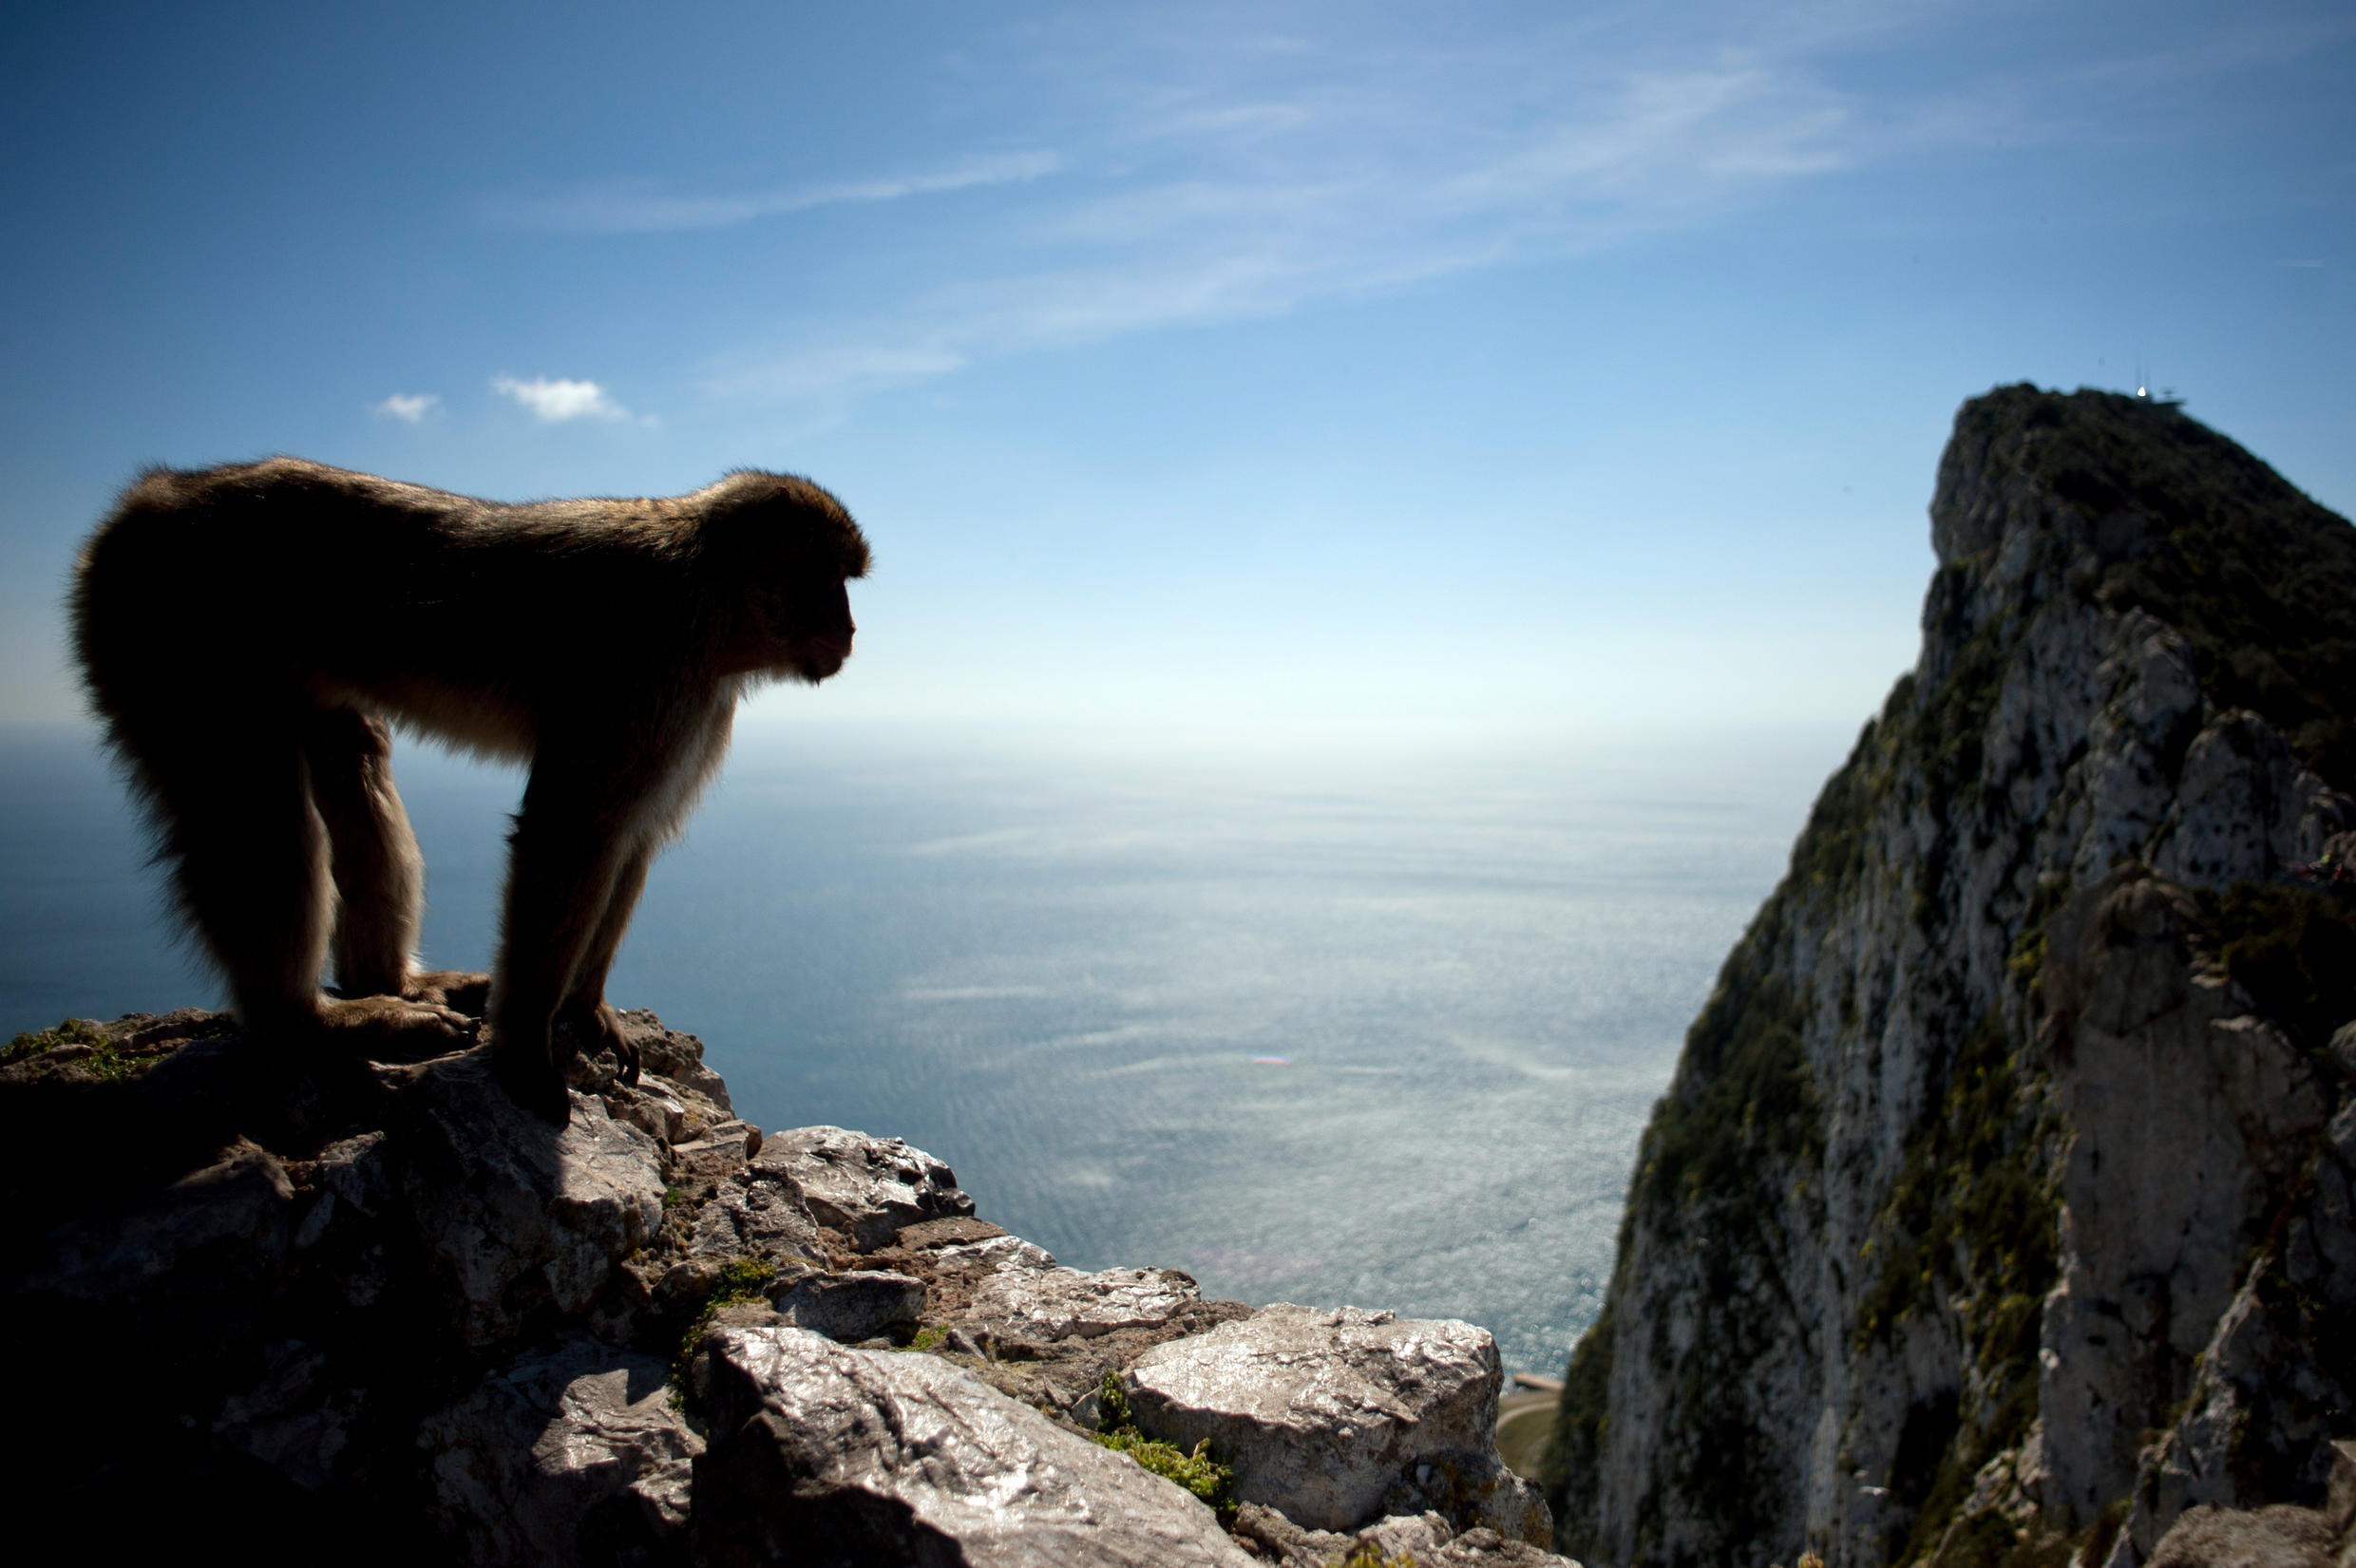 Local folklore has it that Gibraltar would cease to be British if the monkeys were to leave